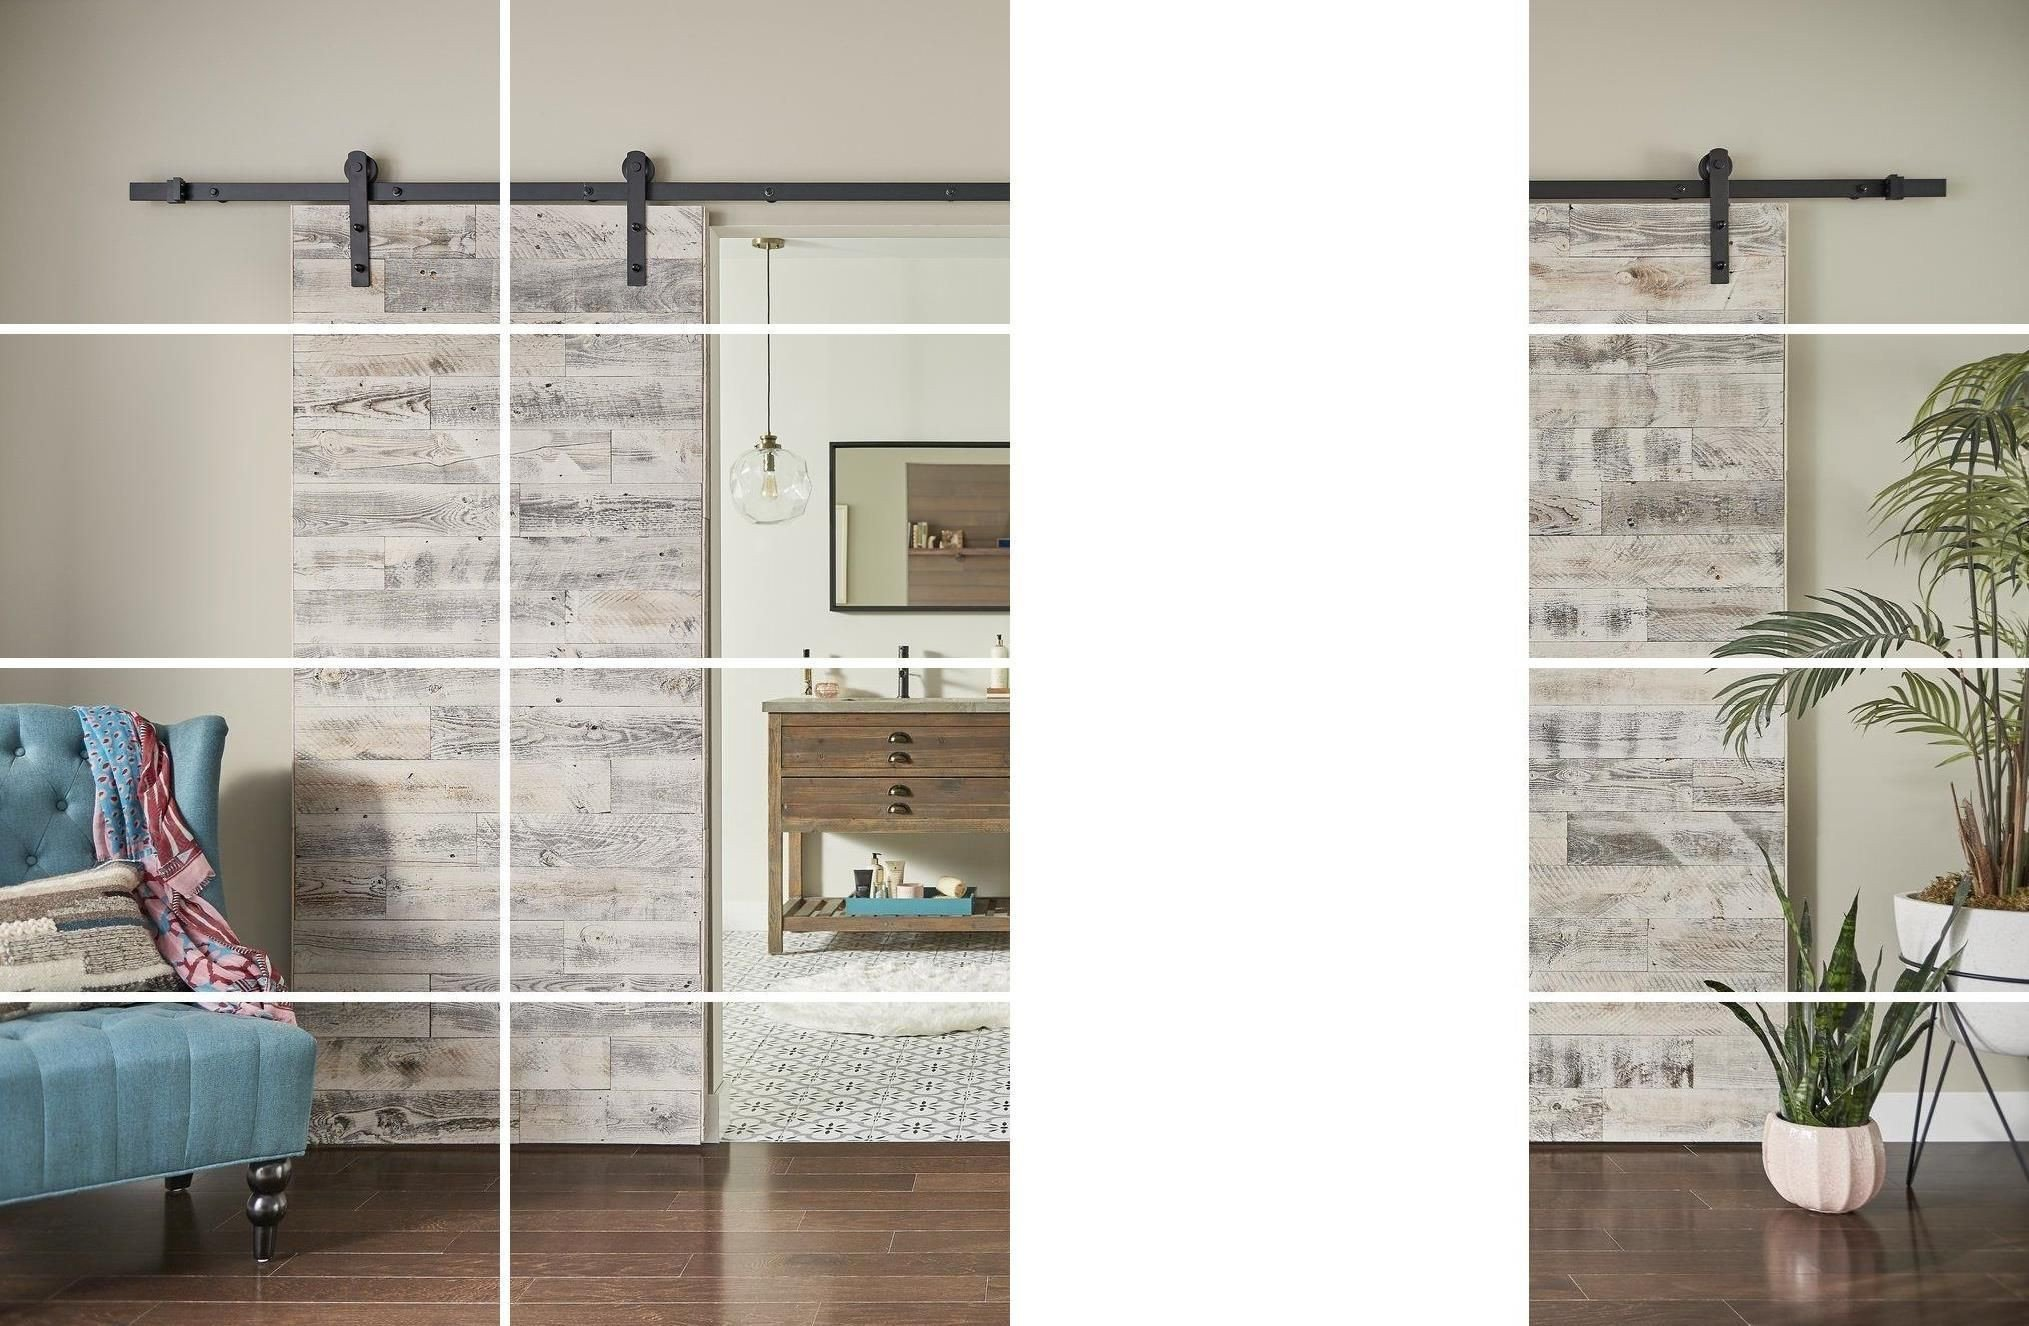 Sliding Barn Door for Bedroom New Barn Door Decorative Barn Doors for Sale